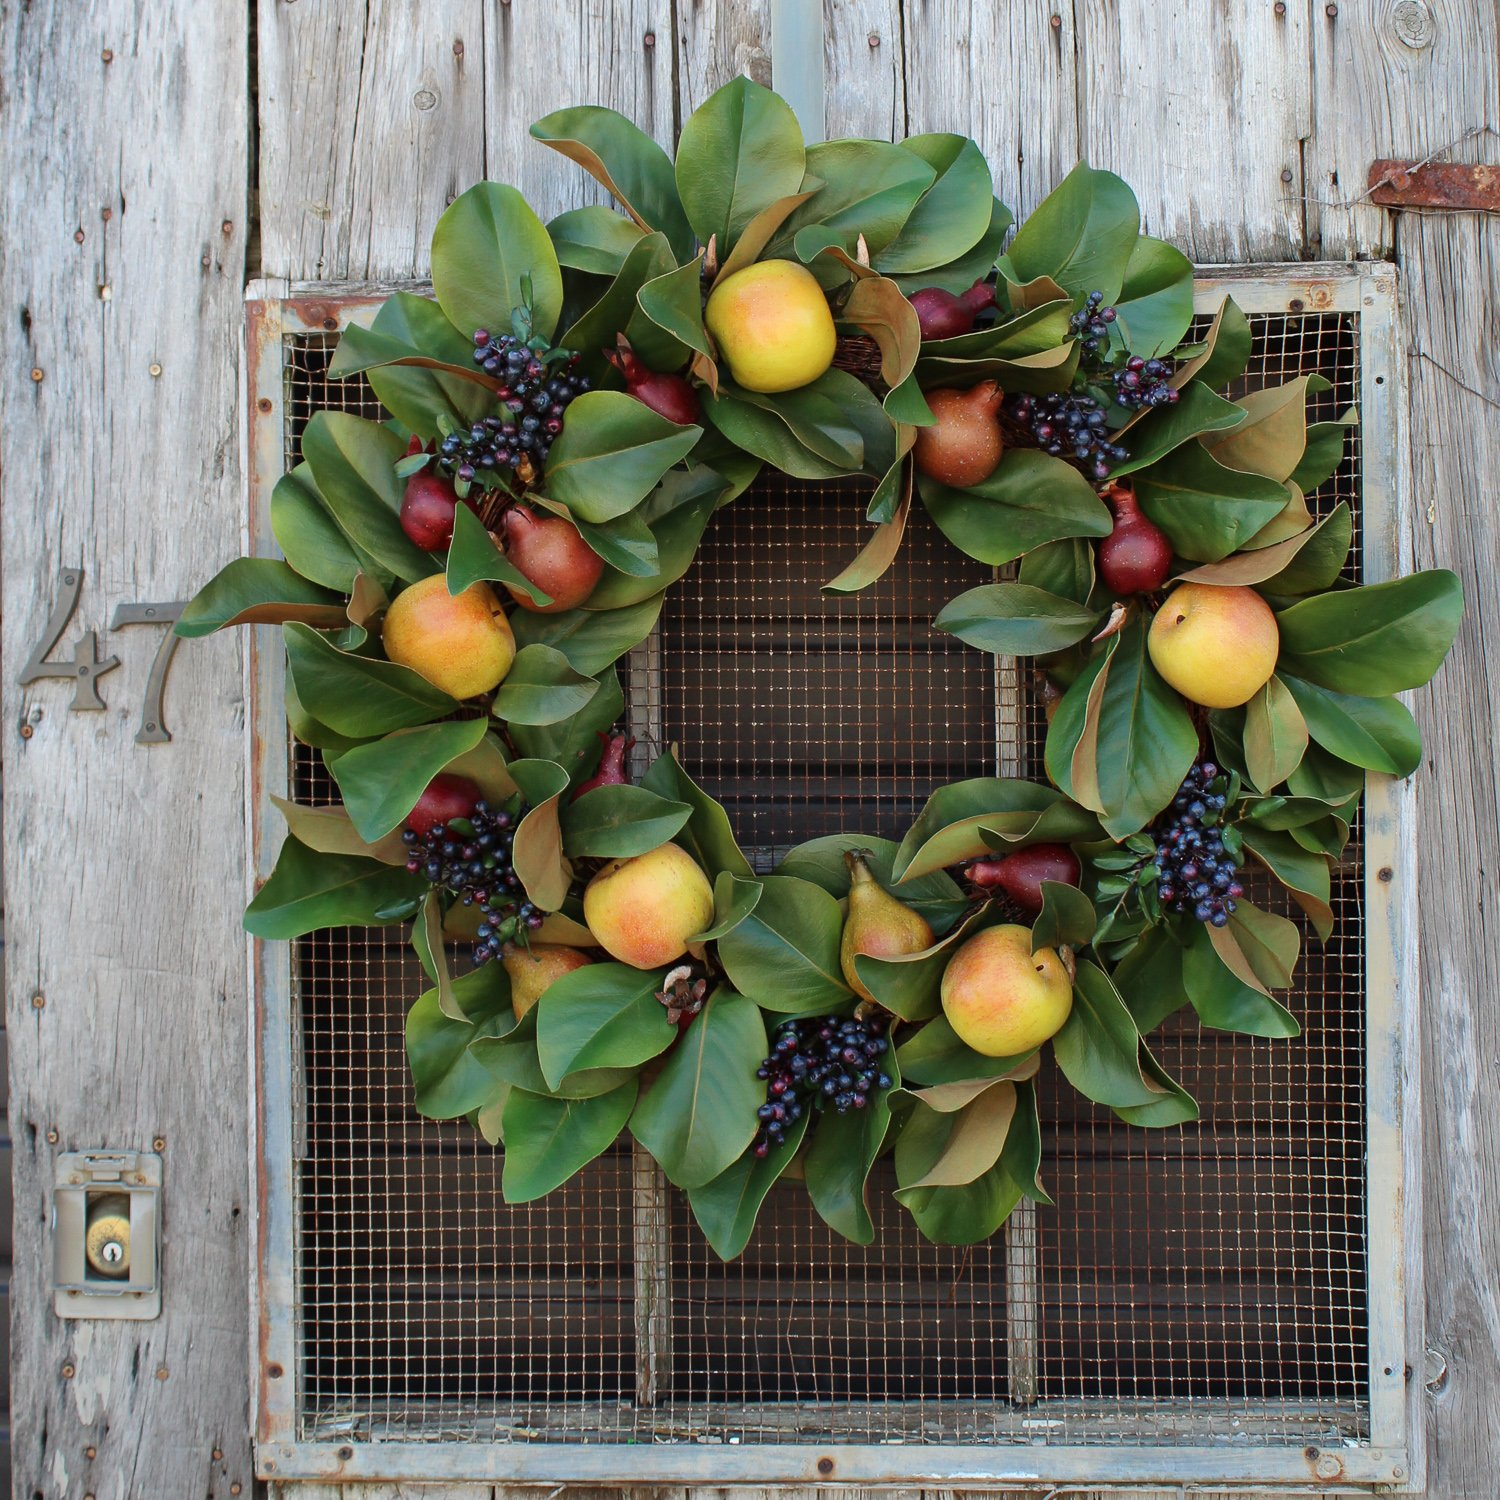 Christmas wreath with apples green leaves berries and fruits